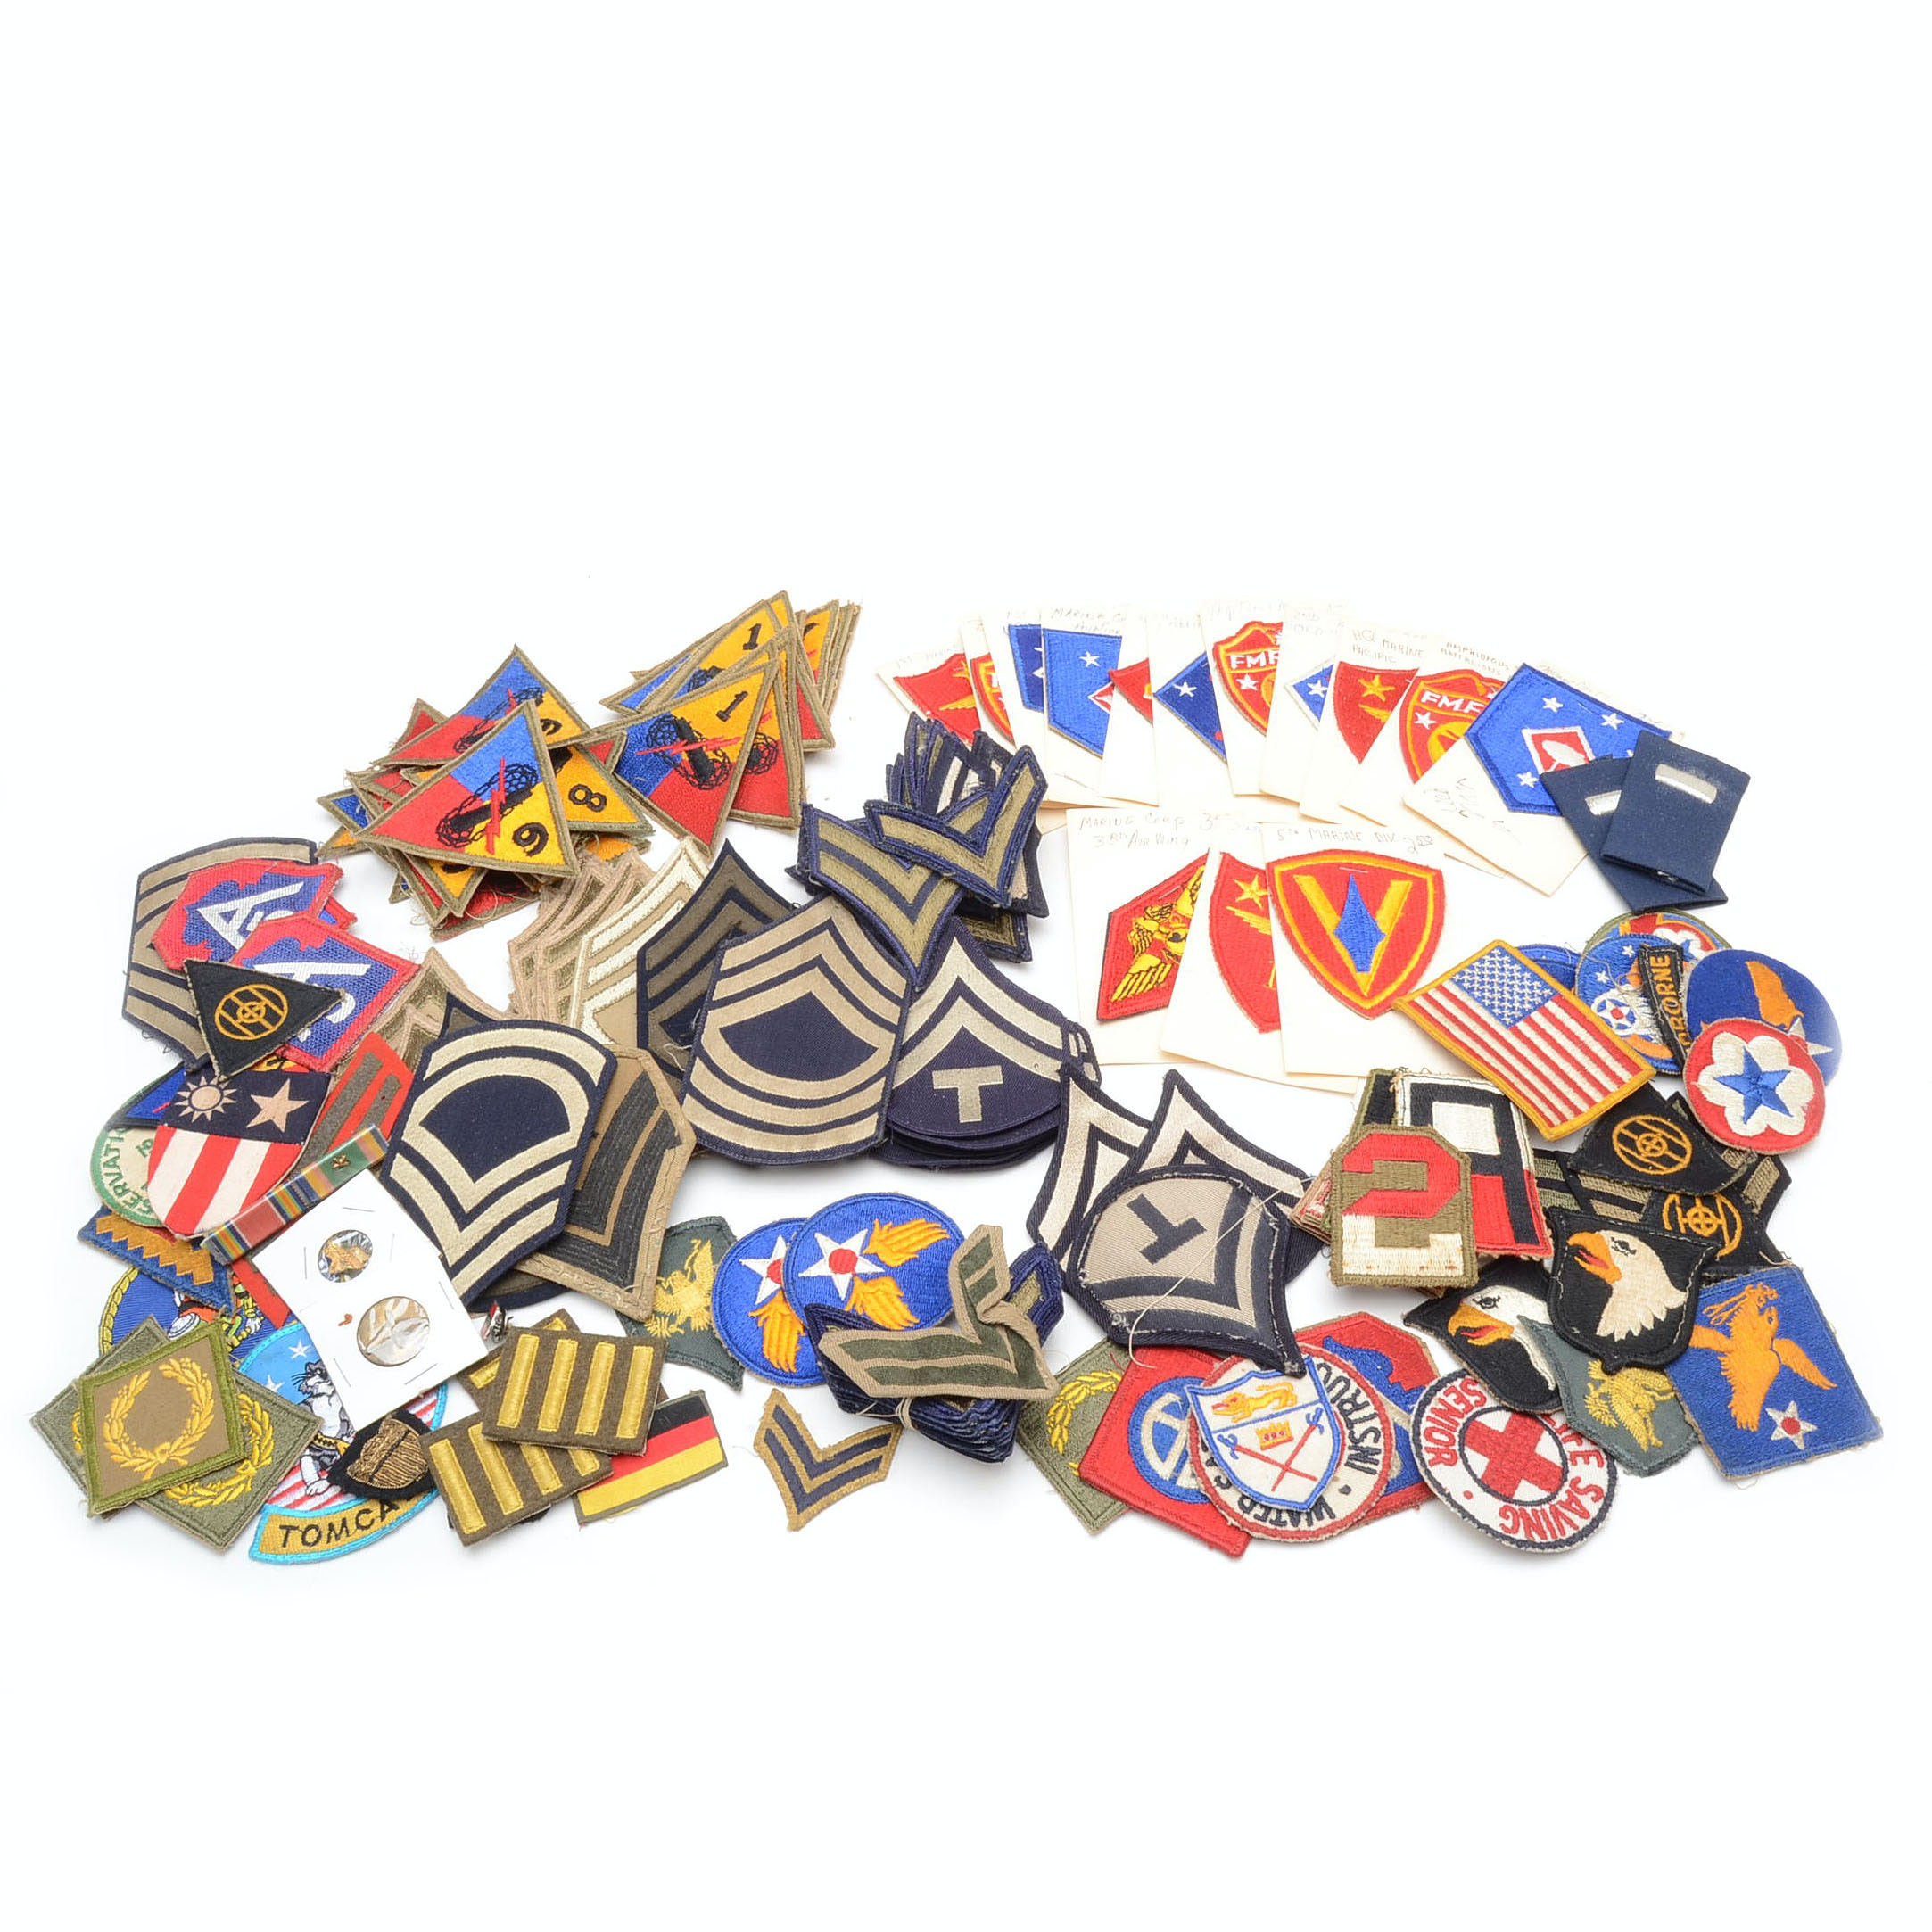 Collection of Vintage US Military Patches